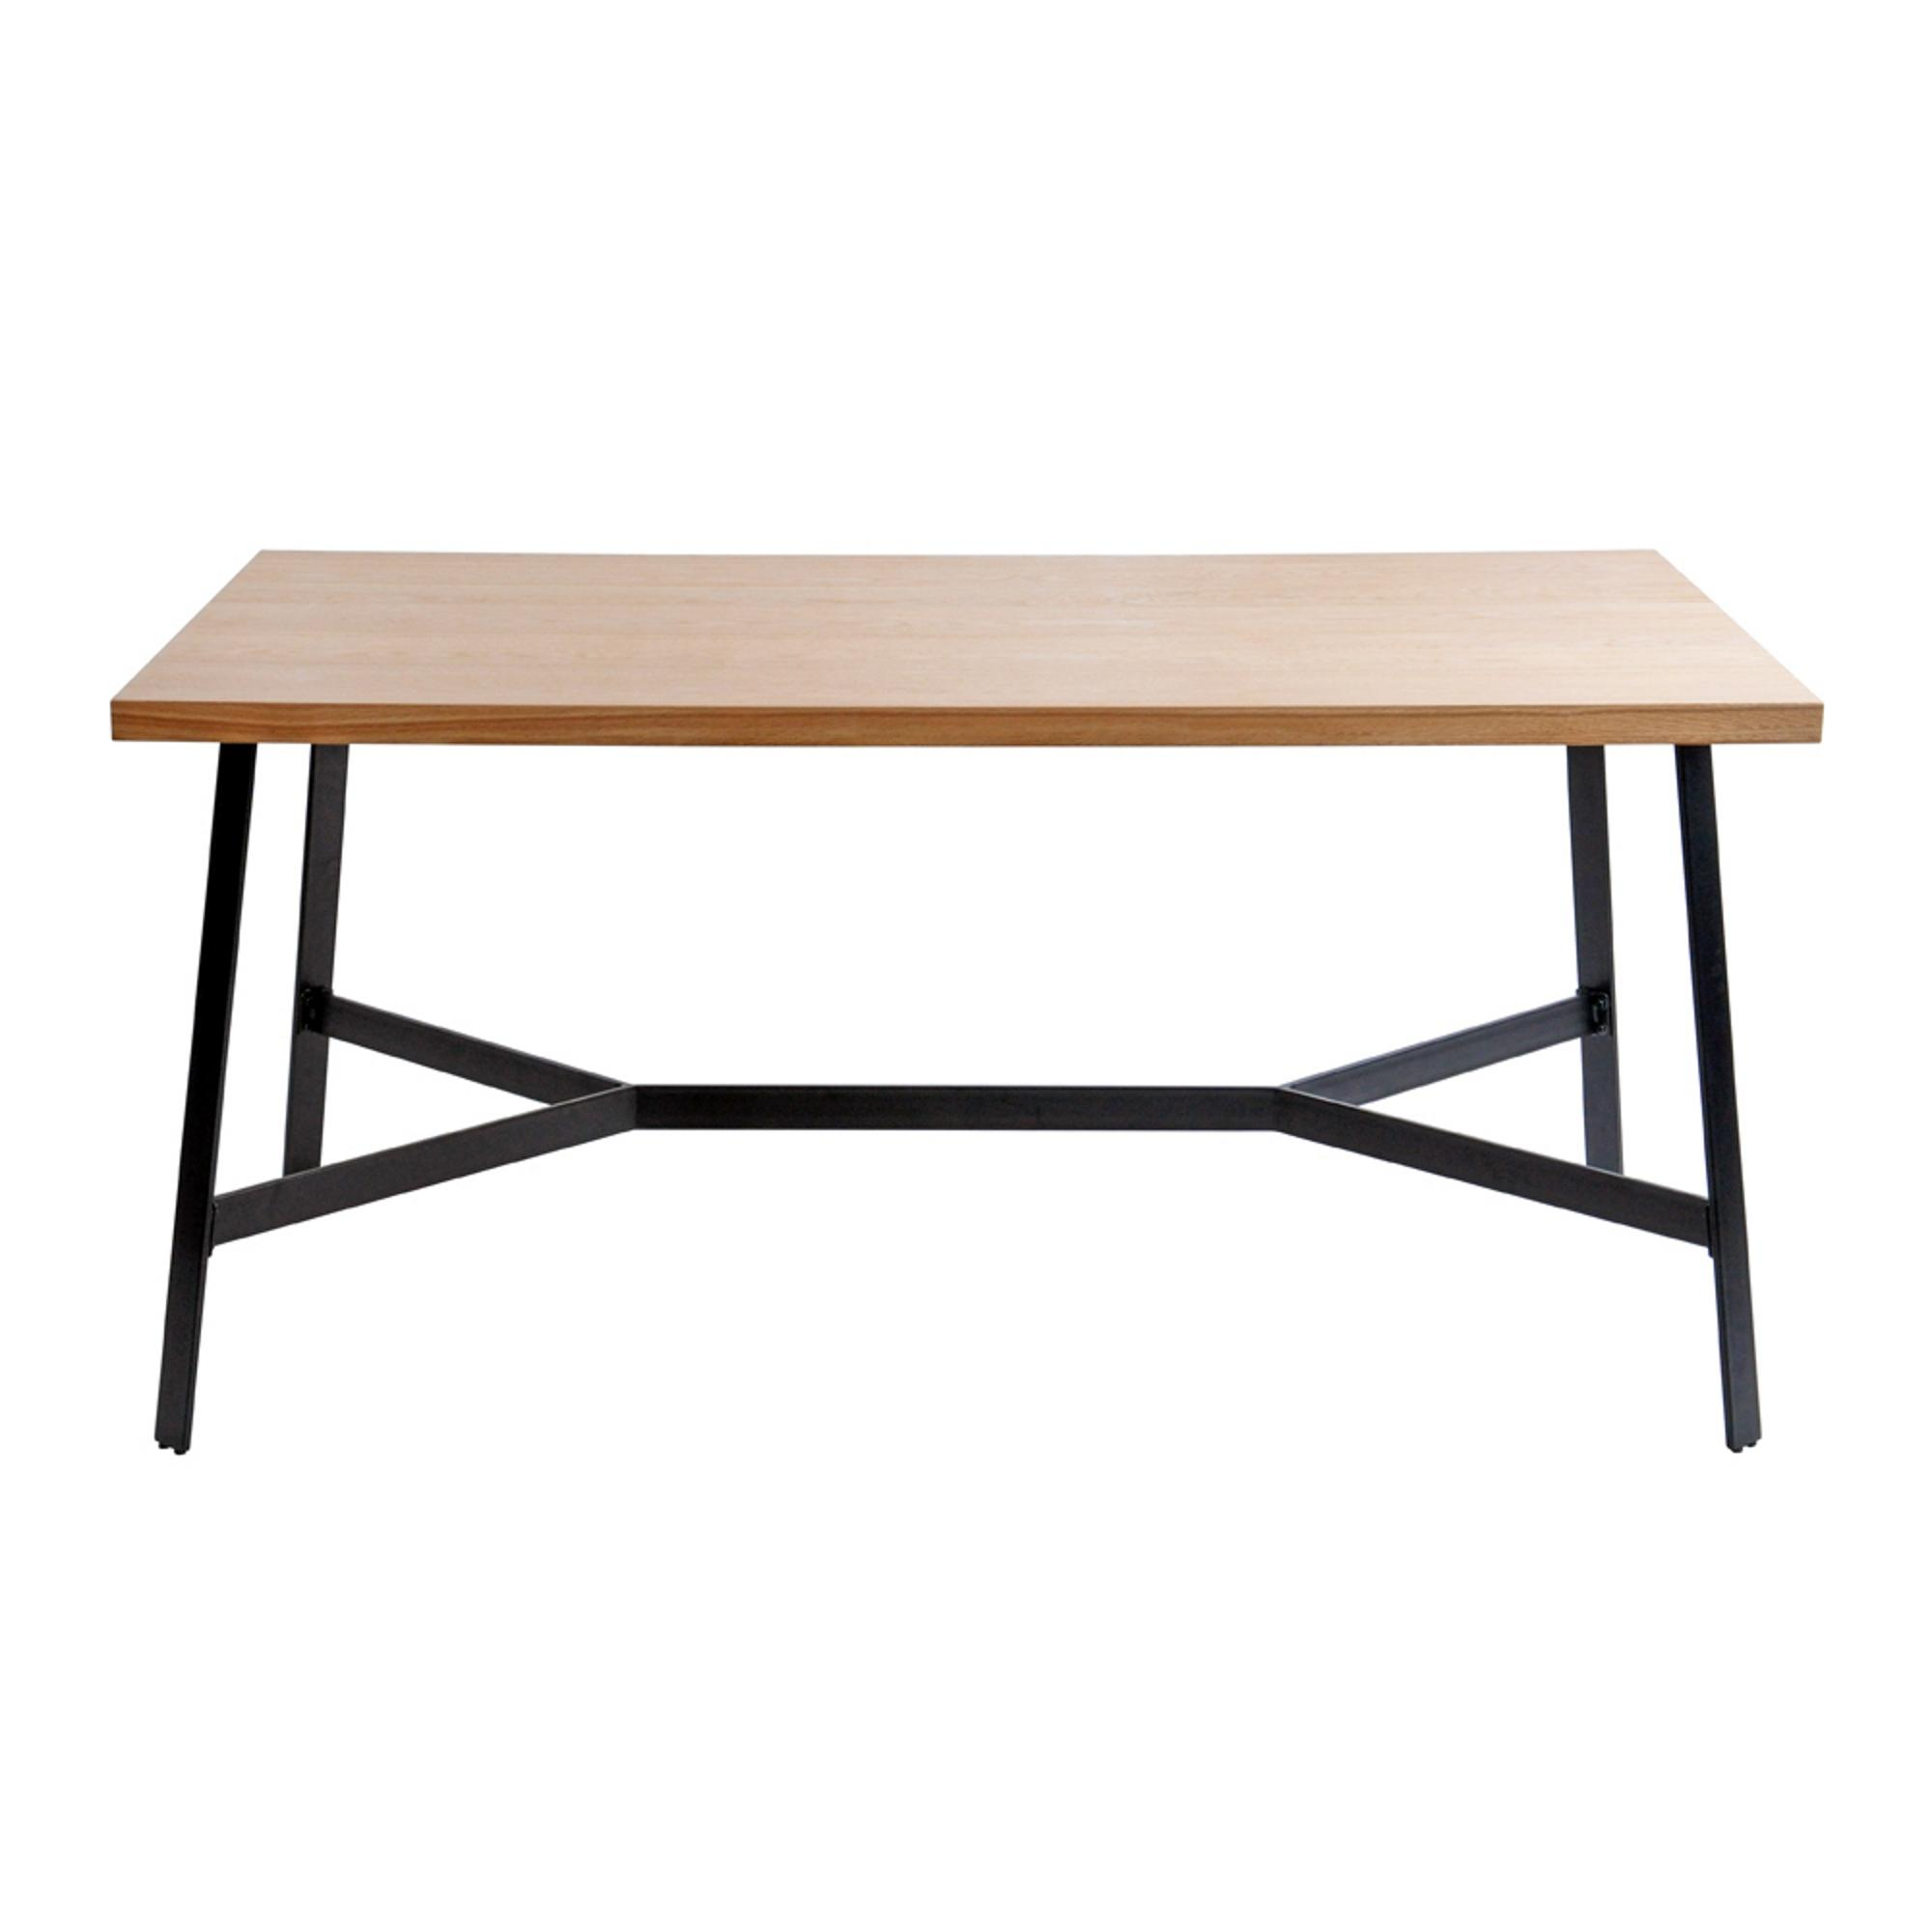 Severn Dining Table 160M (Oak)